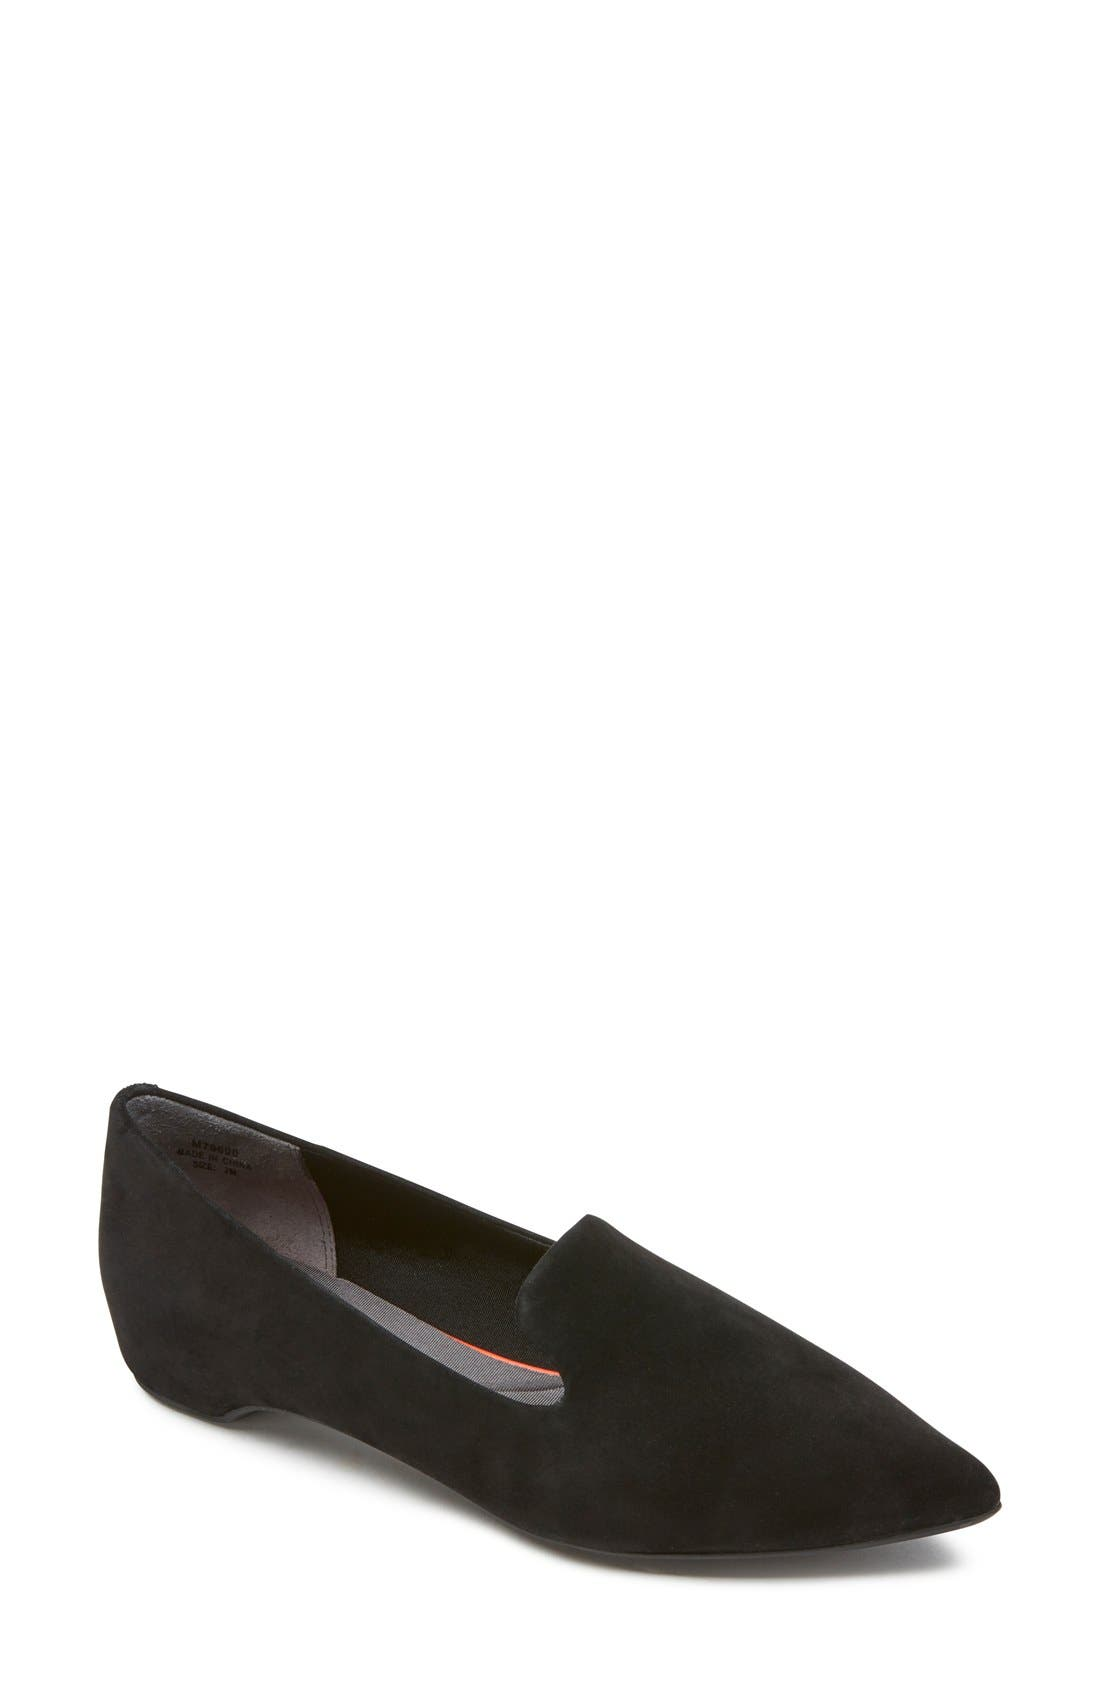 Main Image - Rockport 'Total Motion' Smoking Loafer (Women)